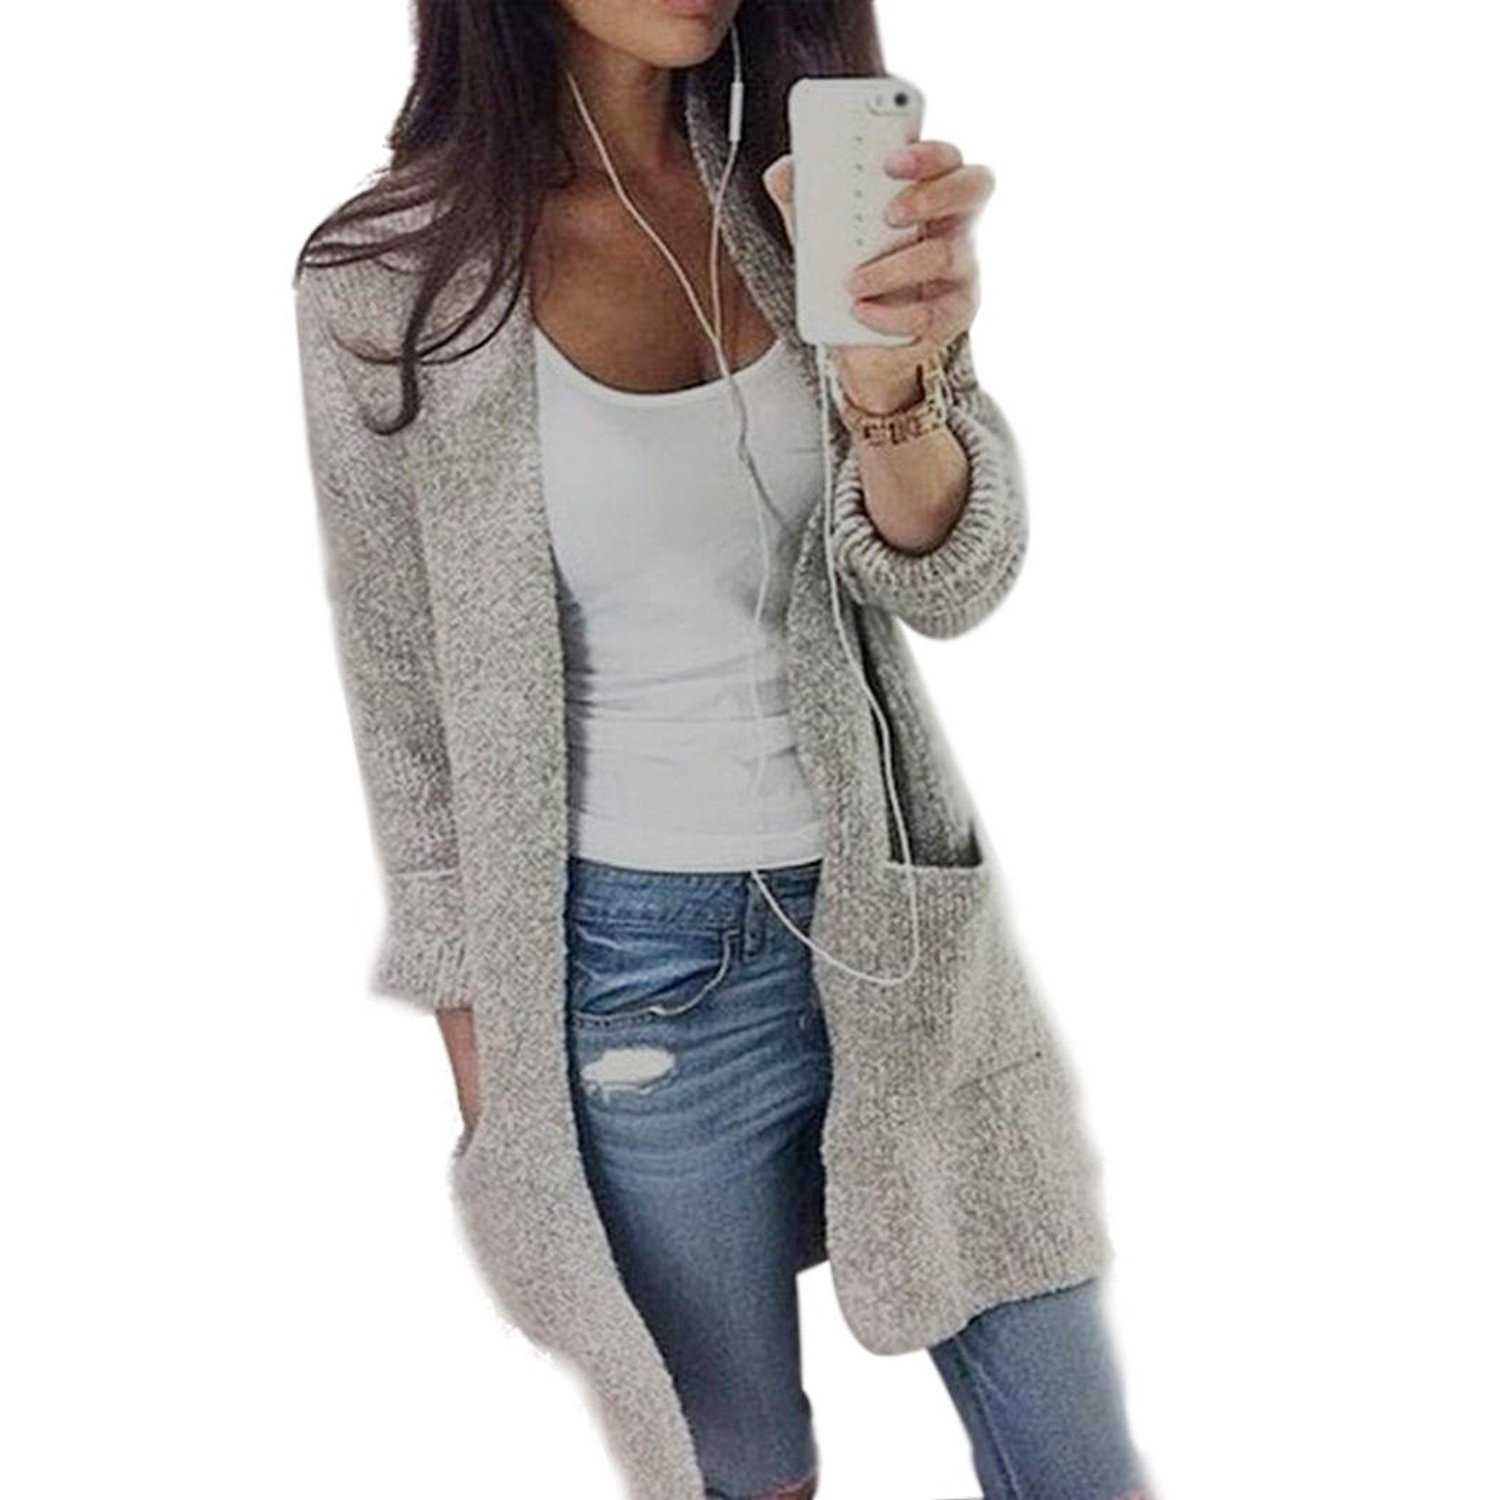 GOLDSTITCH Women's Long Sleeve Open Front Warm Cardigans Pullover Sweater Blouses